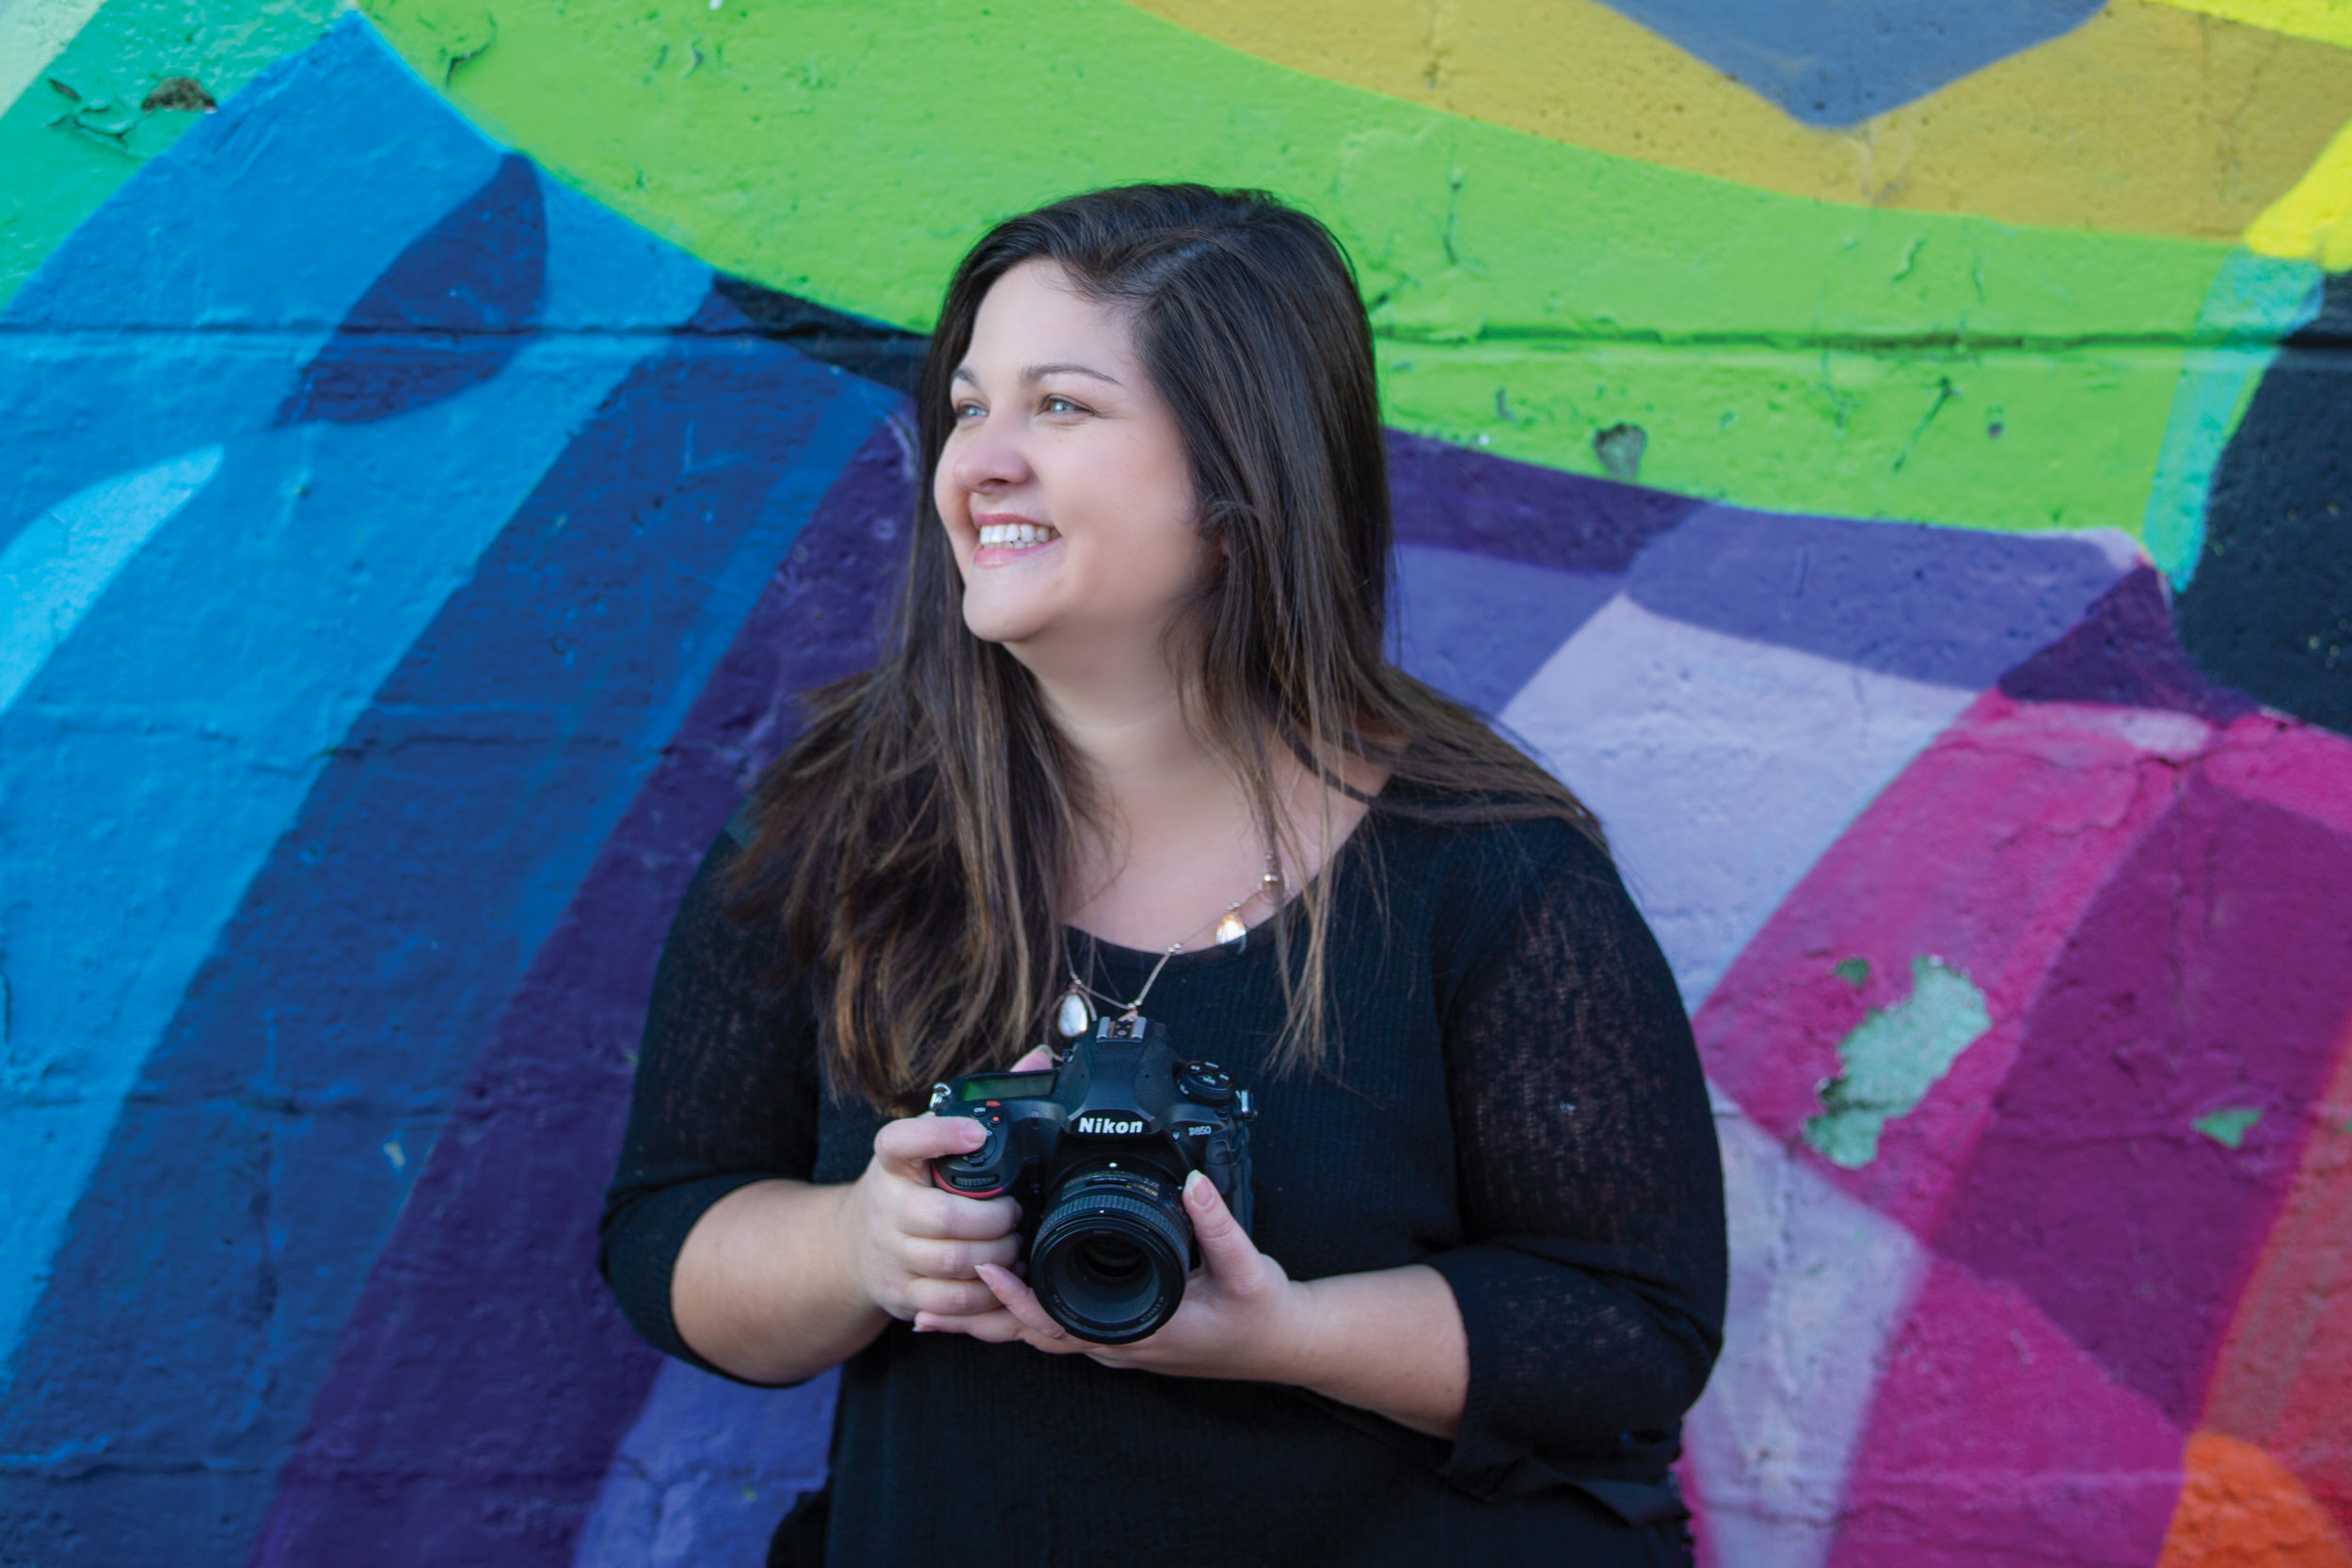 - Well Hello, I'm Brittany. I'm the camera, heart, and soul behind Life with a View Studio. My passion is to tell your story through photography by capturing those beautifully real. At home, I'm a wife to the love of my life, Dustin, and mother to our outgoing (wild) daughter, Renlee.